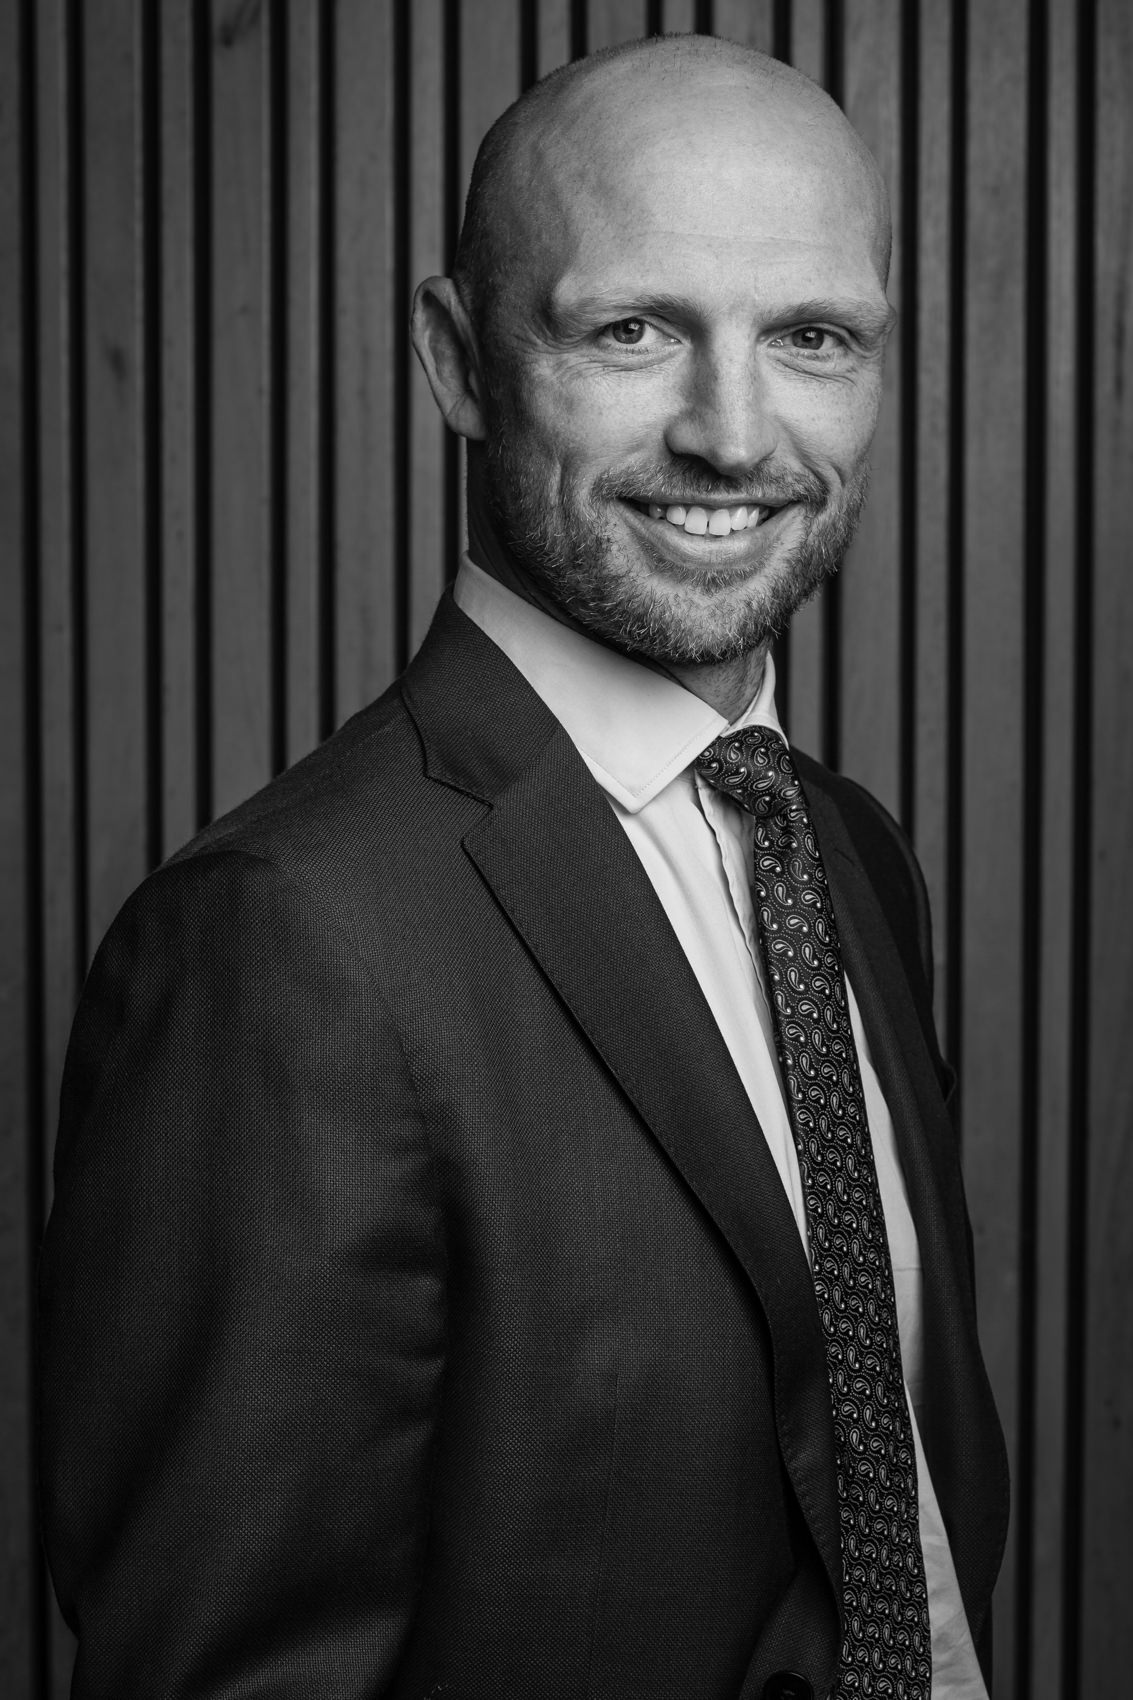 Matt Dawson MBE who is visiting our Avery Hill campus on 6 March 2019, supporting University Mental Health and Wellbeing